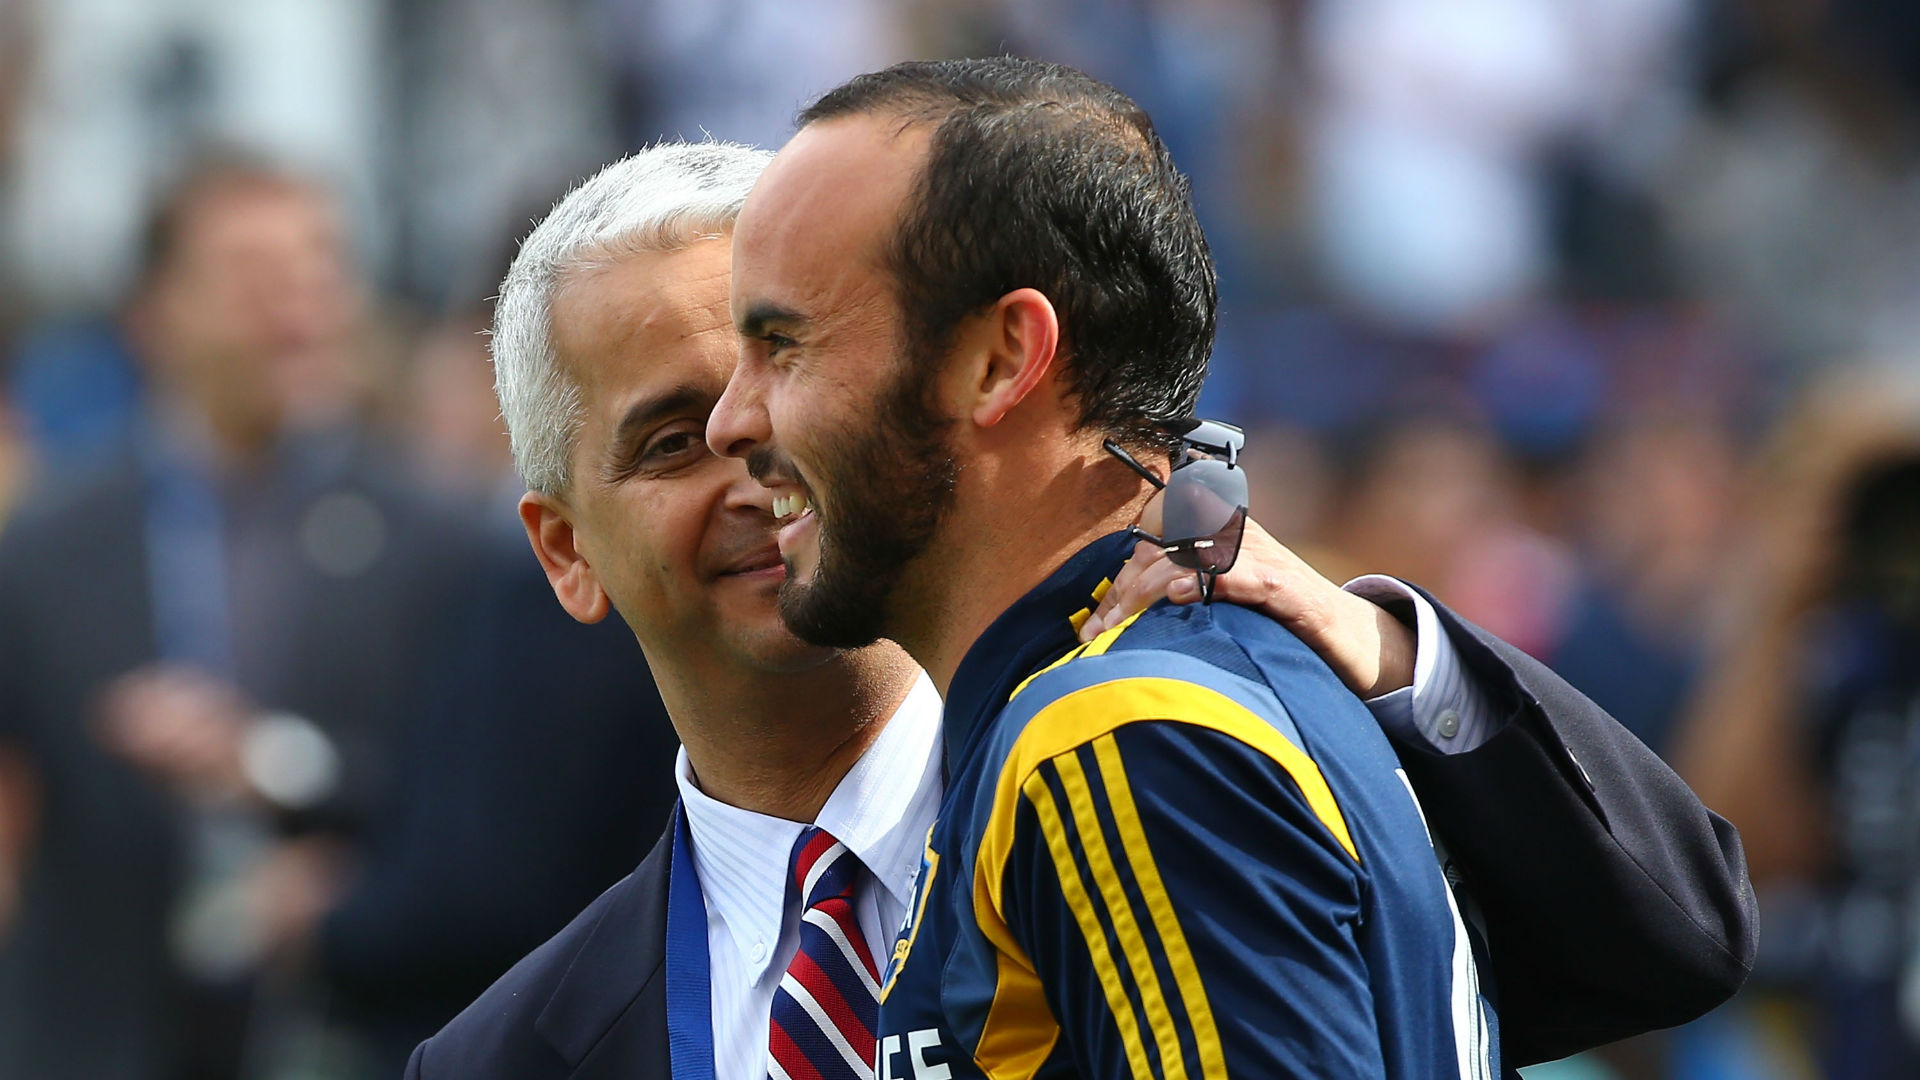 Landon Donovan adapting to transition from the soccer field to TV booth